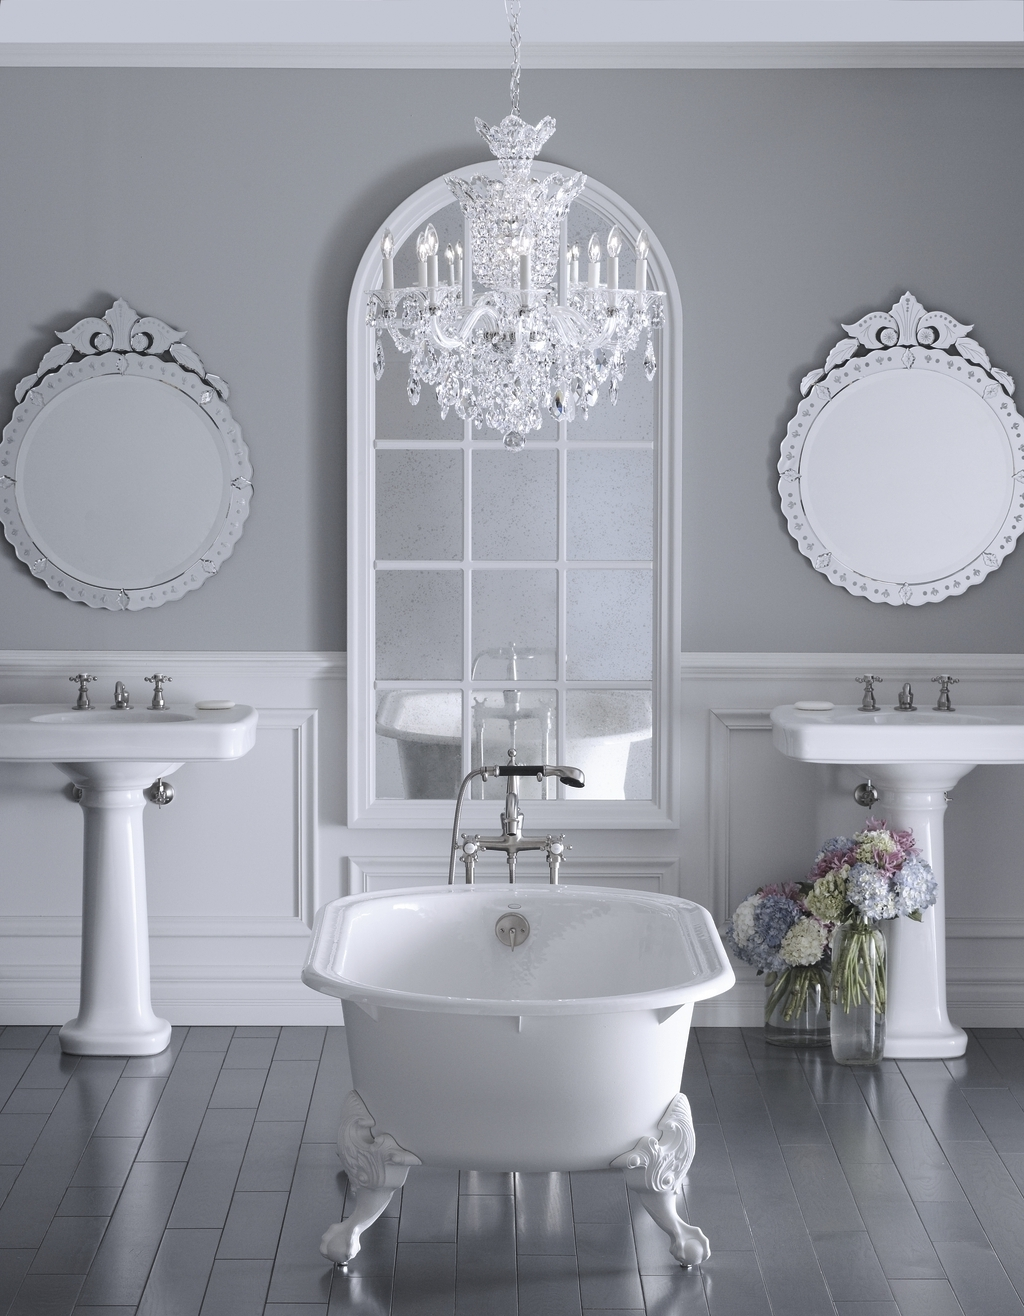 Widely Used Bathroom Chandeliers In Bathroom: Bathroom Chandeliers For Beautiful And Elegant Bathroom (View 20 of 20)